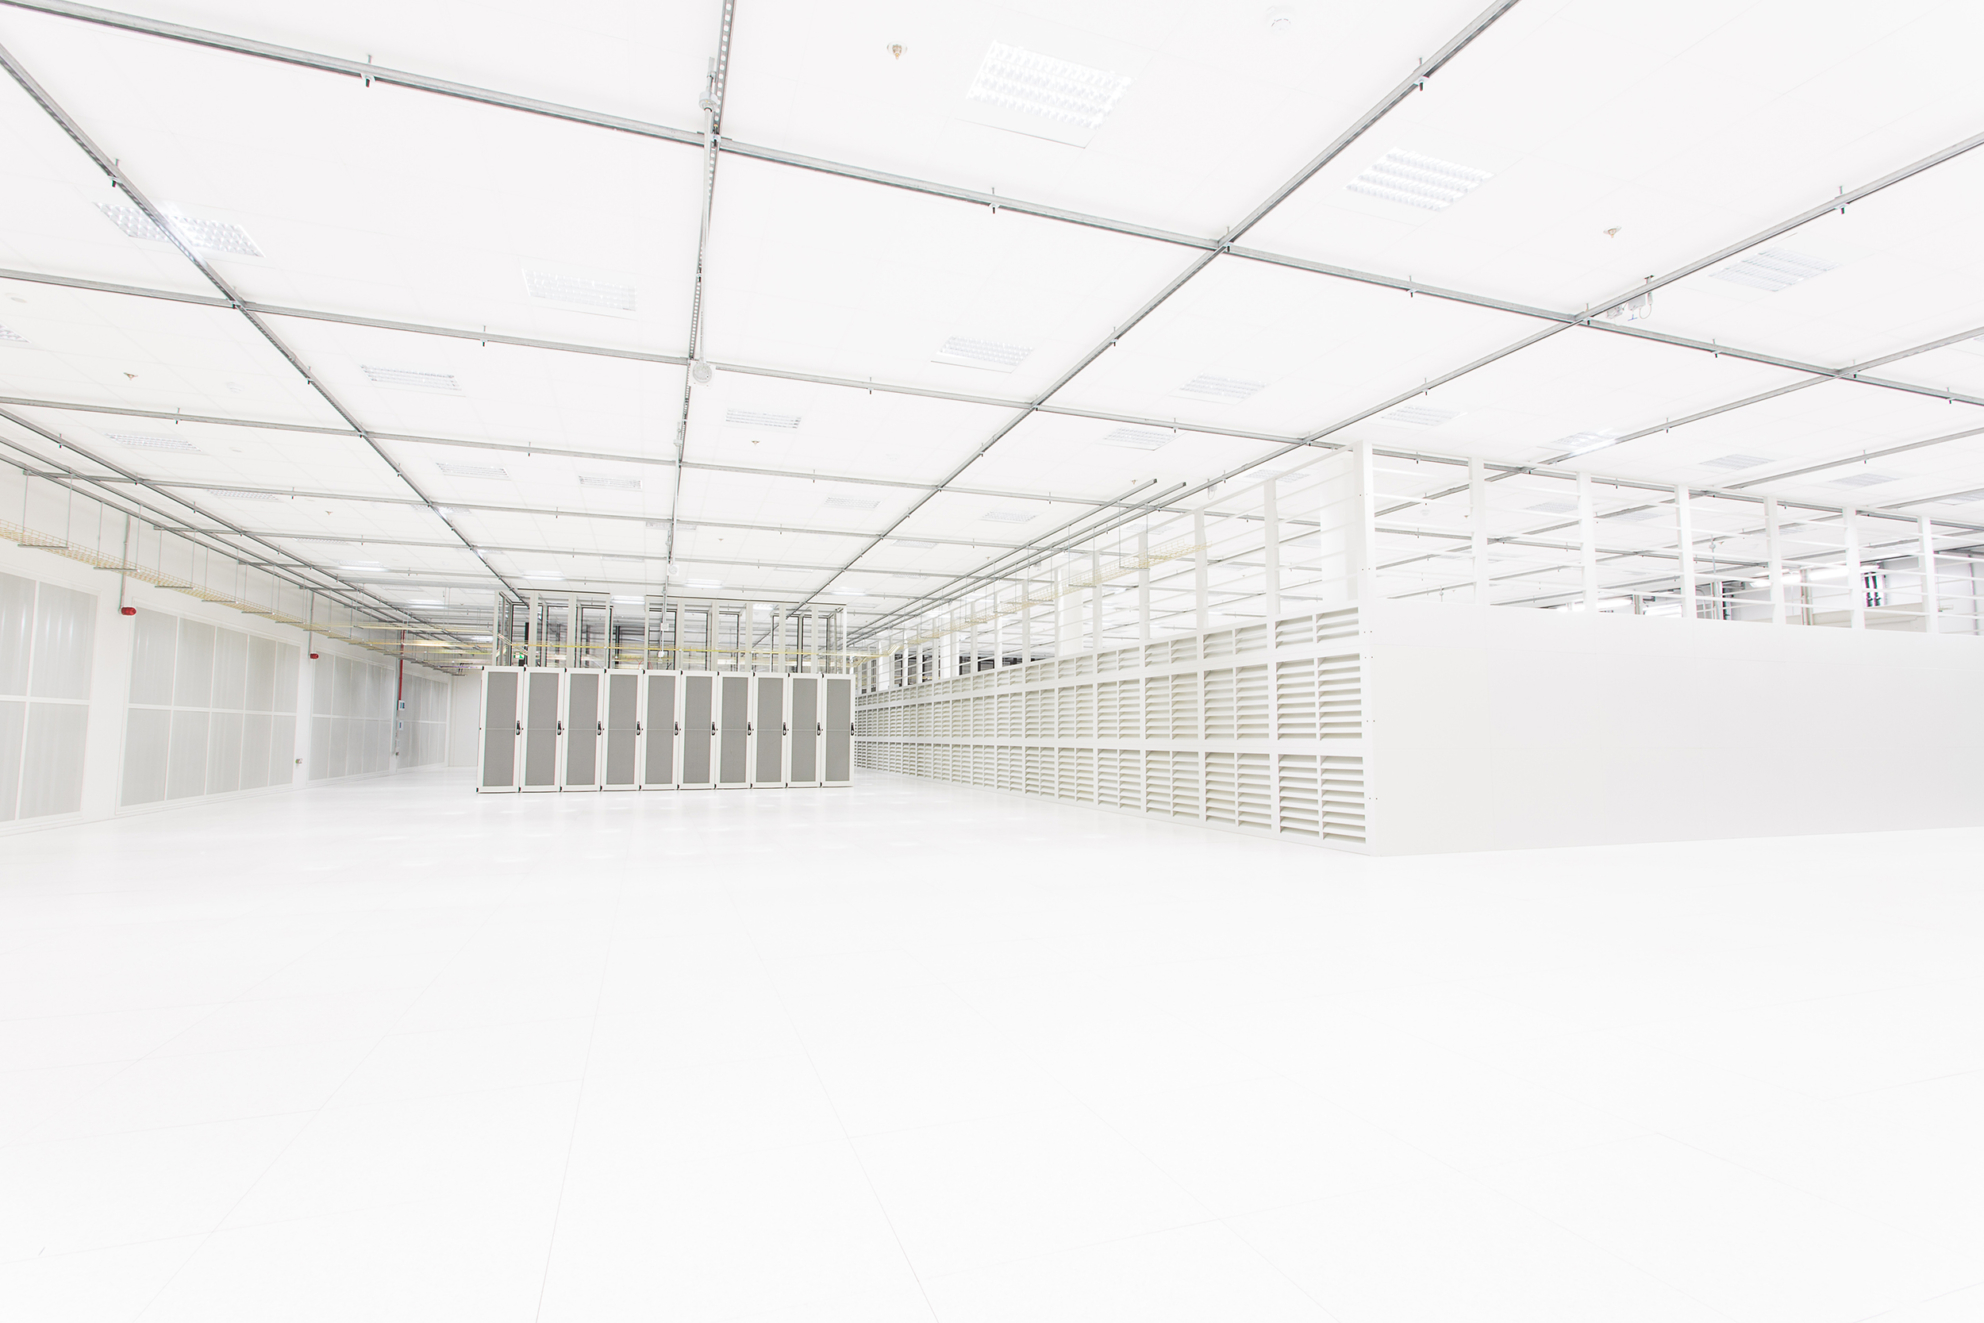 Photograph showing the inside of a computing warehouse, in white and faint tones.